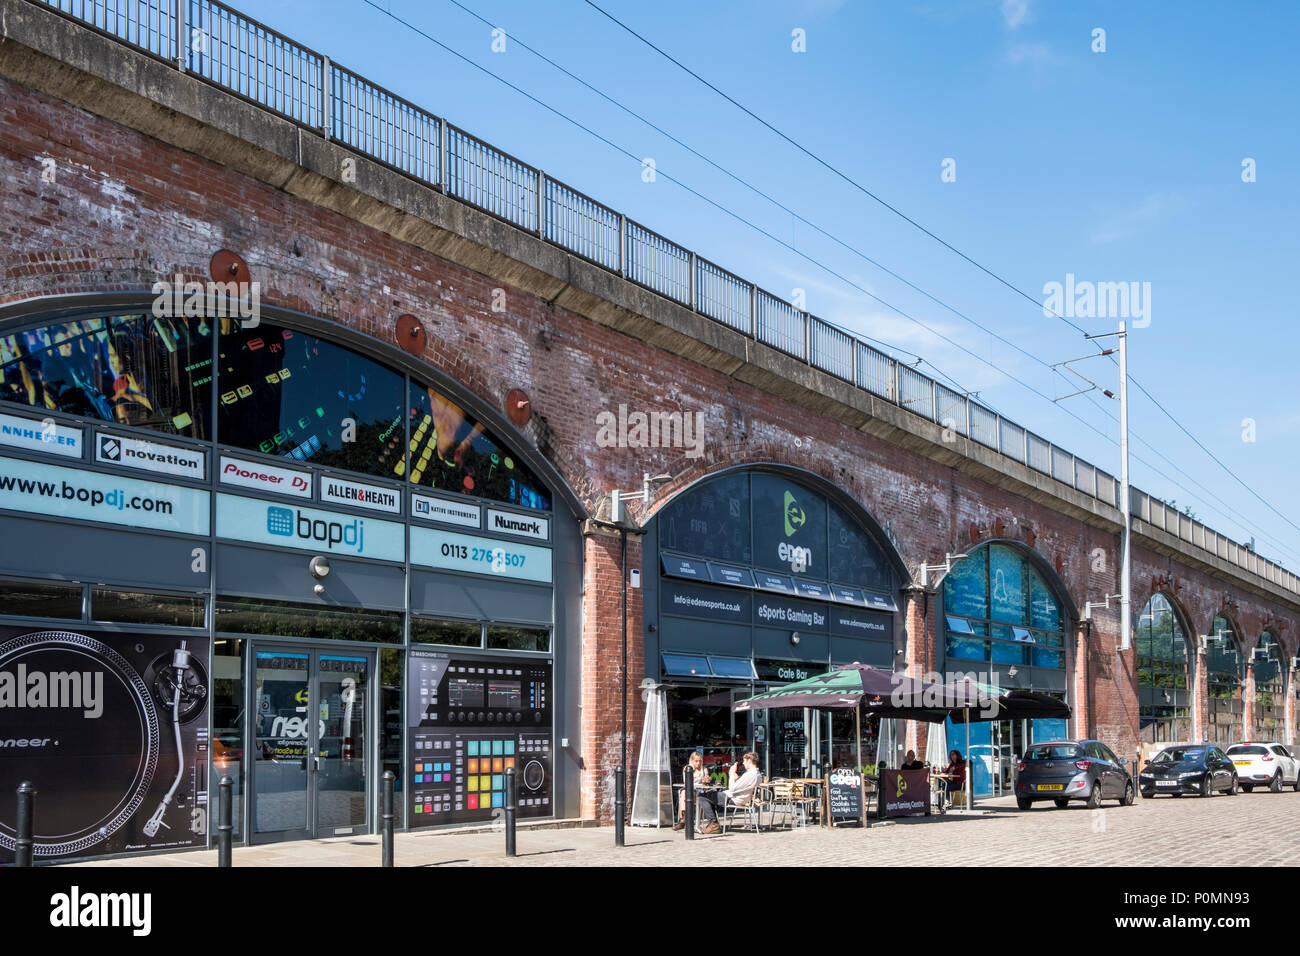 Railway arch businesses, Leeds, West Yorkshire, England, UK - Stock Image